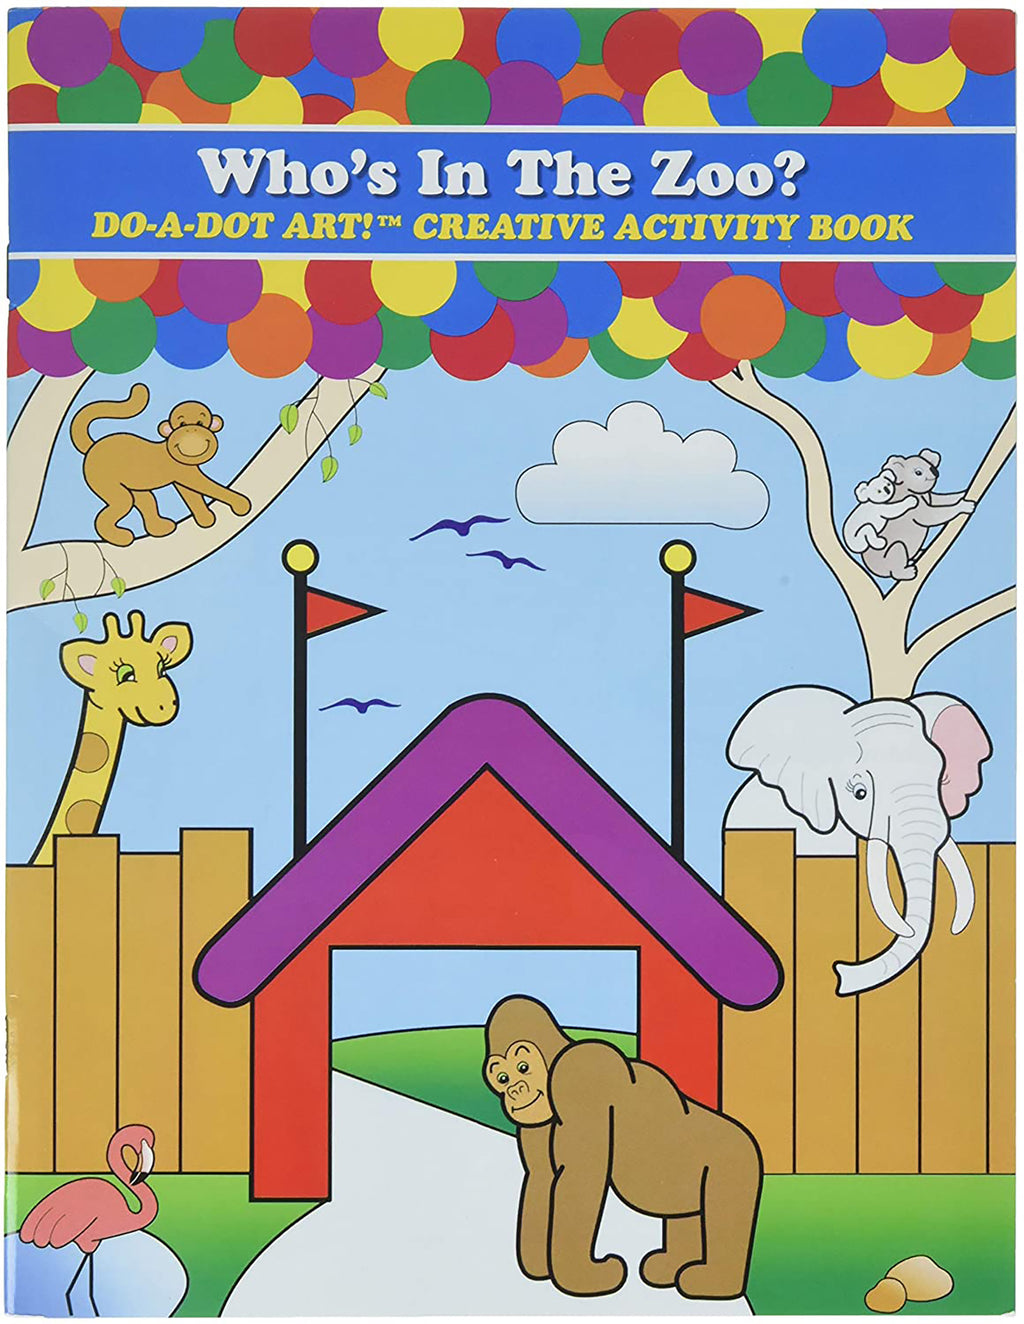 WHO'S IN THE ZOO? DO-A-DOT ACTIVITY BOOK